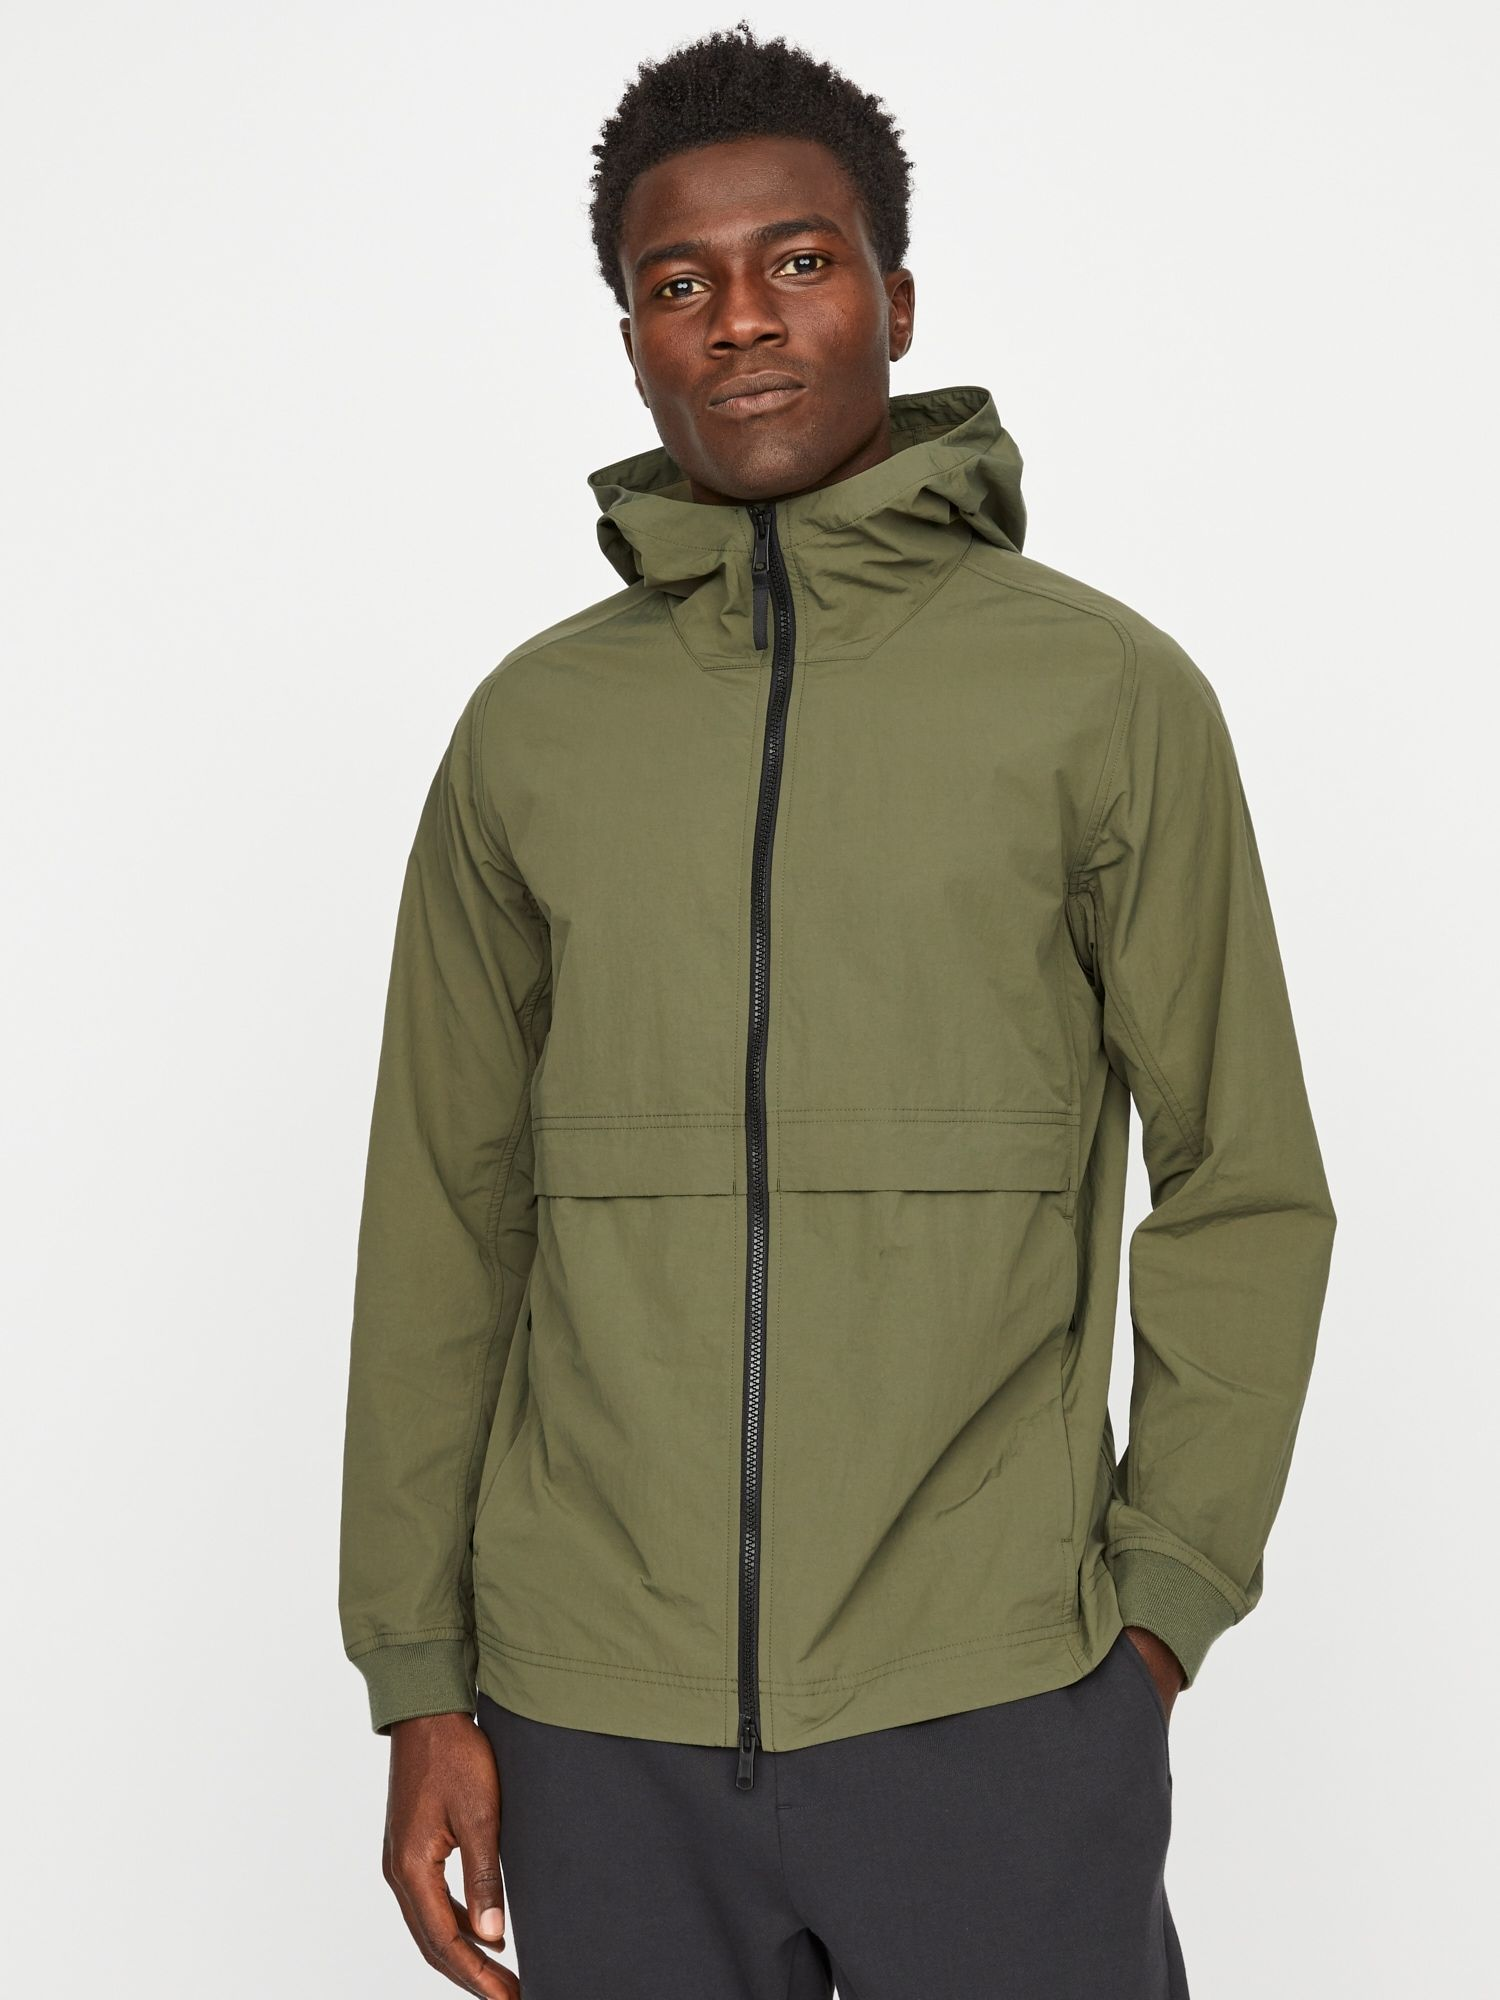 82feaef09ccce Hill City City Anorak in 2019 | Products | Hill city, Hooded jacket ...